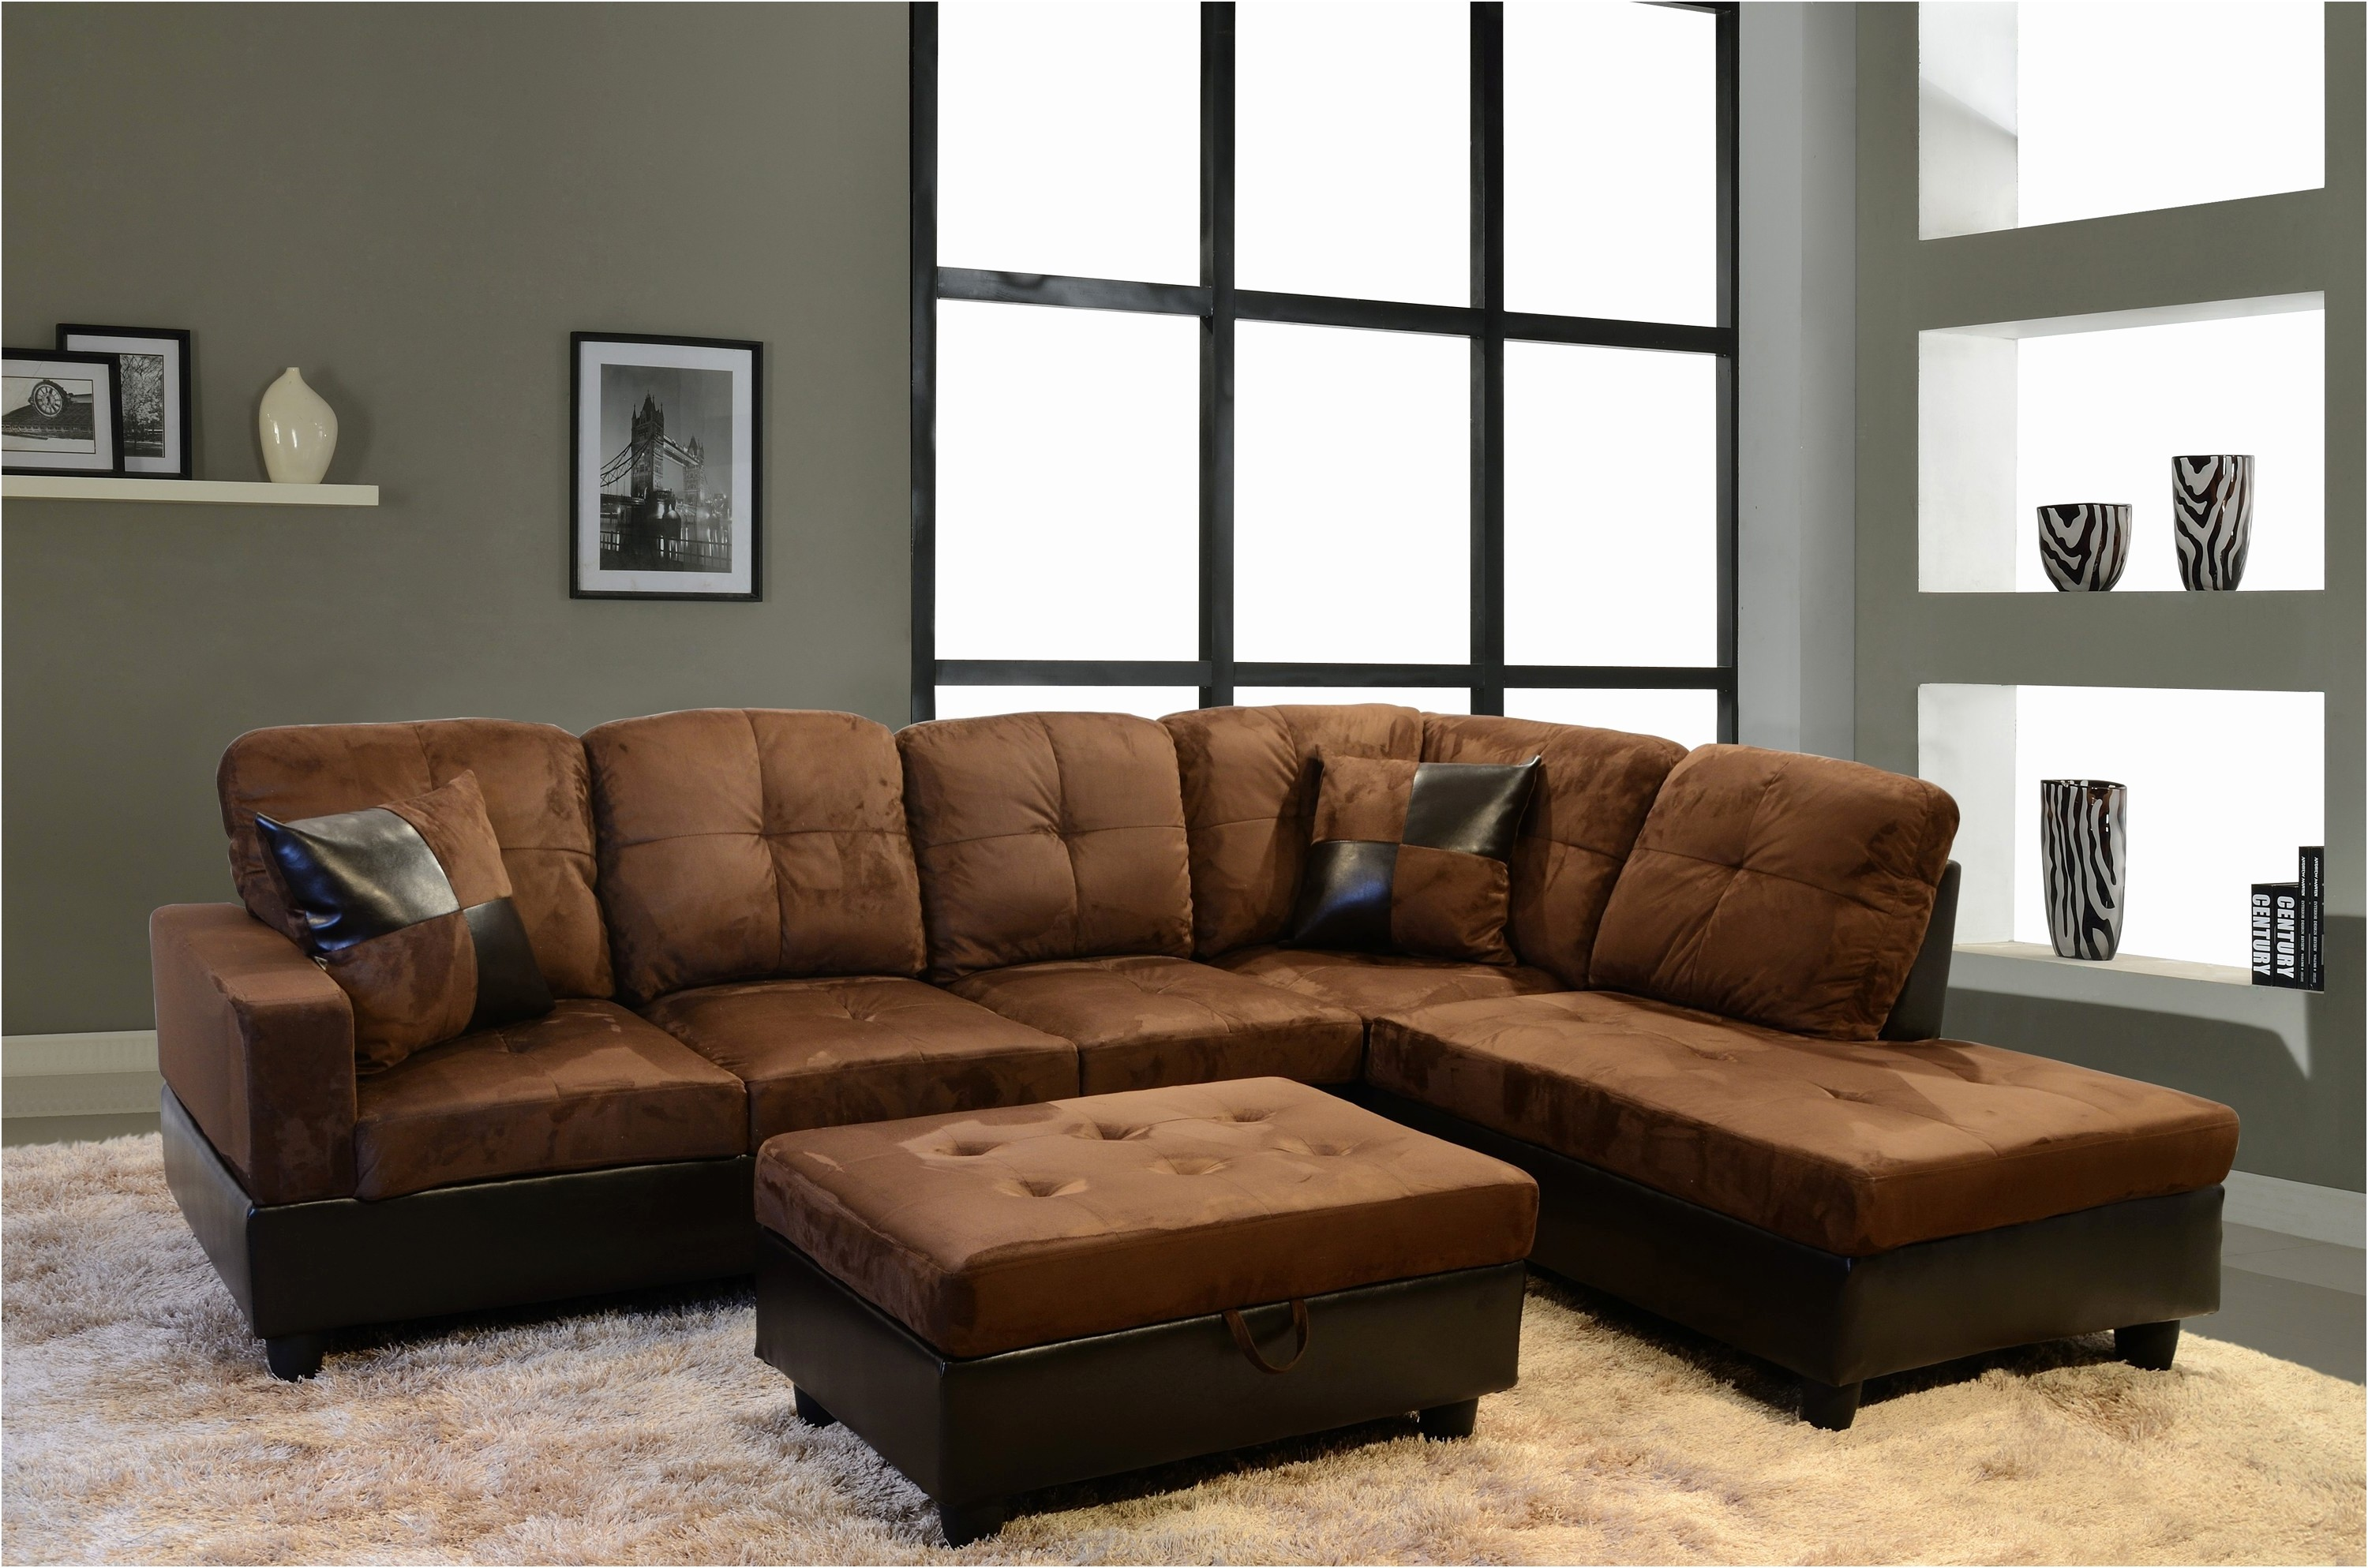 Sofas Under 300 Sensational Cheap Sectional sofas Under Lovely Furniture Rug Cheap Layout